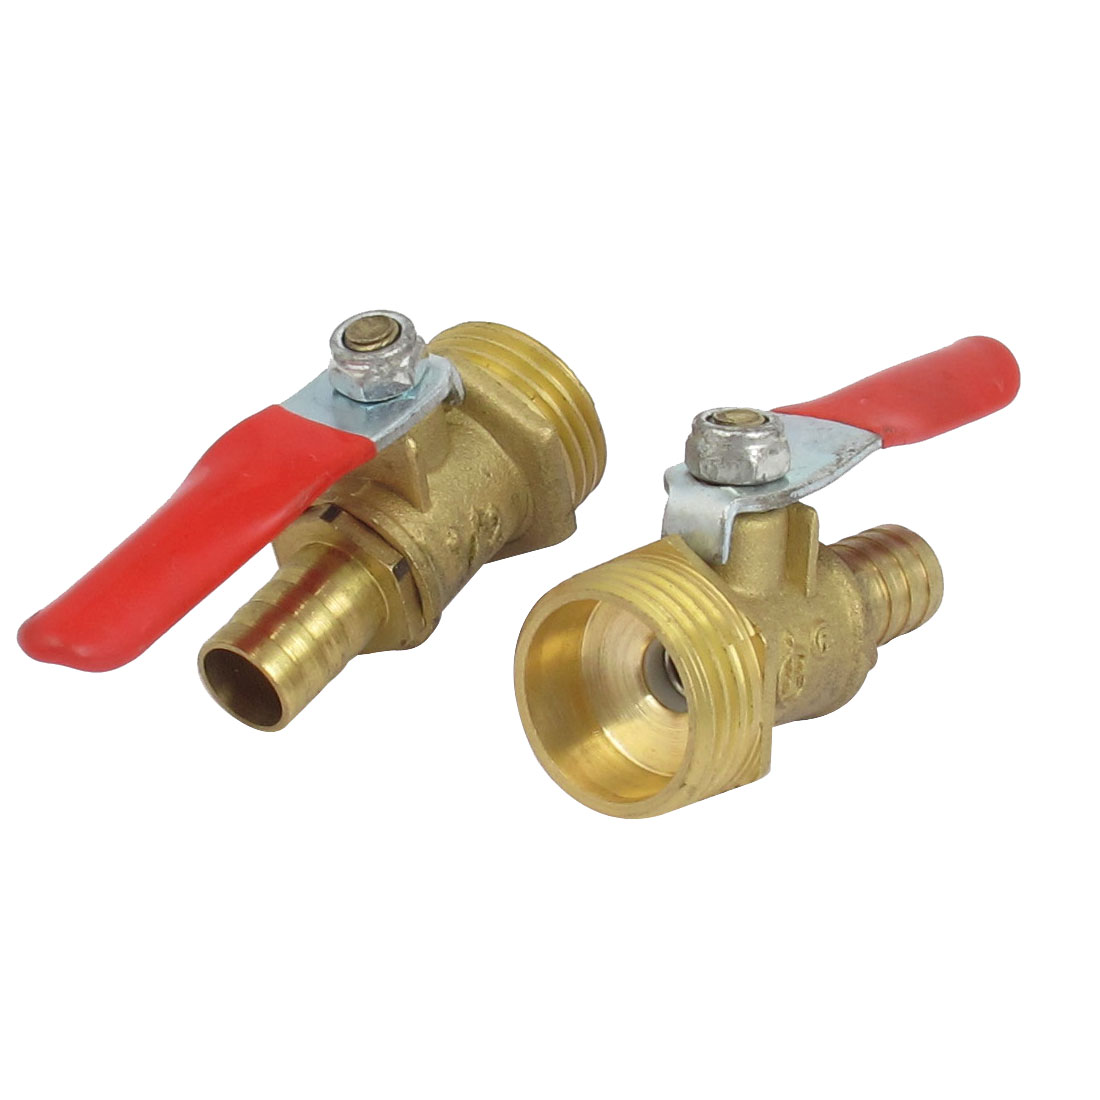 1/2BSP Male Thread 10mm Inner Dia Red Lever Handle Gas Ball Valve Connector 2pcs